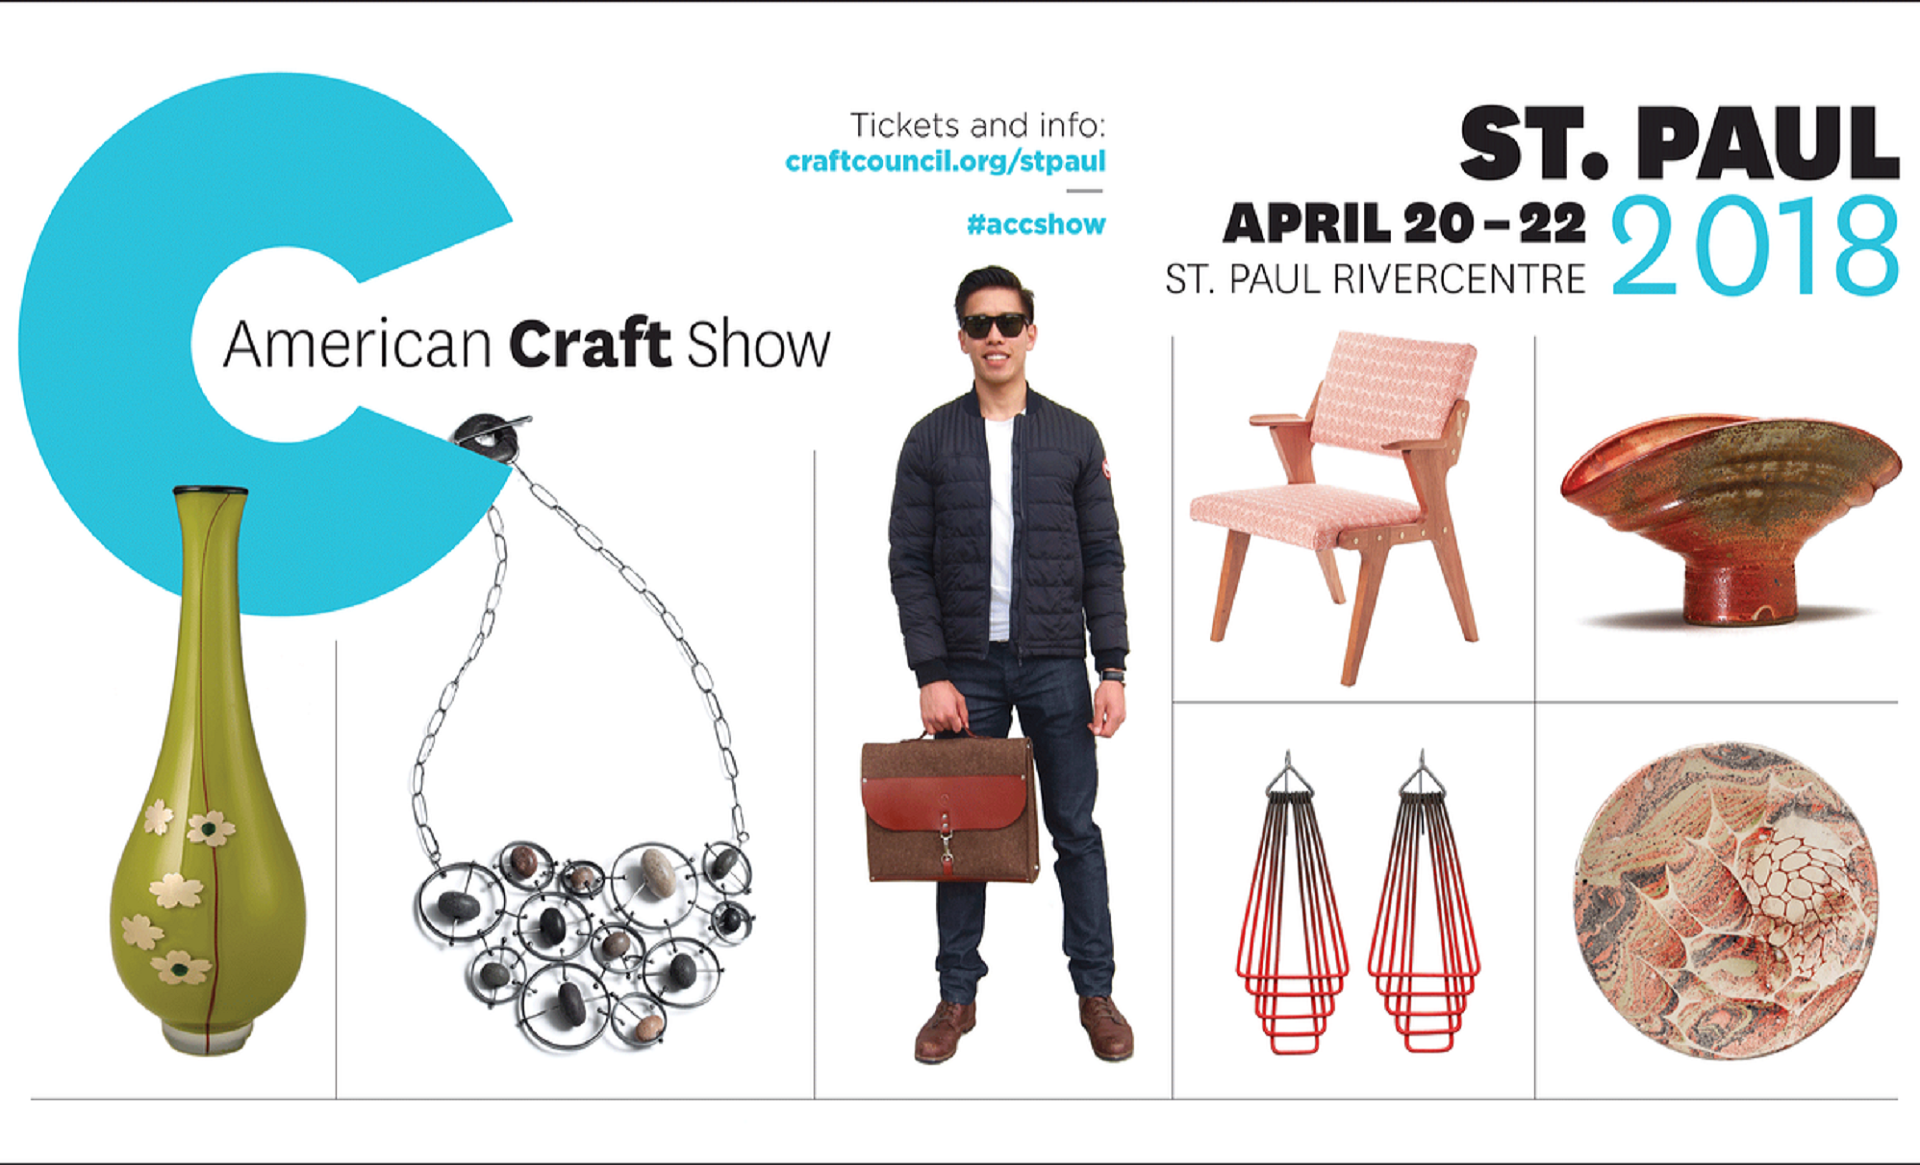 American Craft Show à Saint Paul du 20 au 22 avril